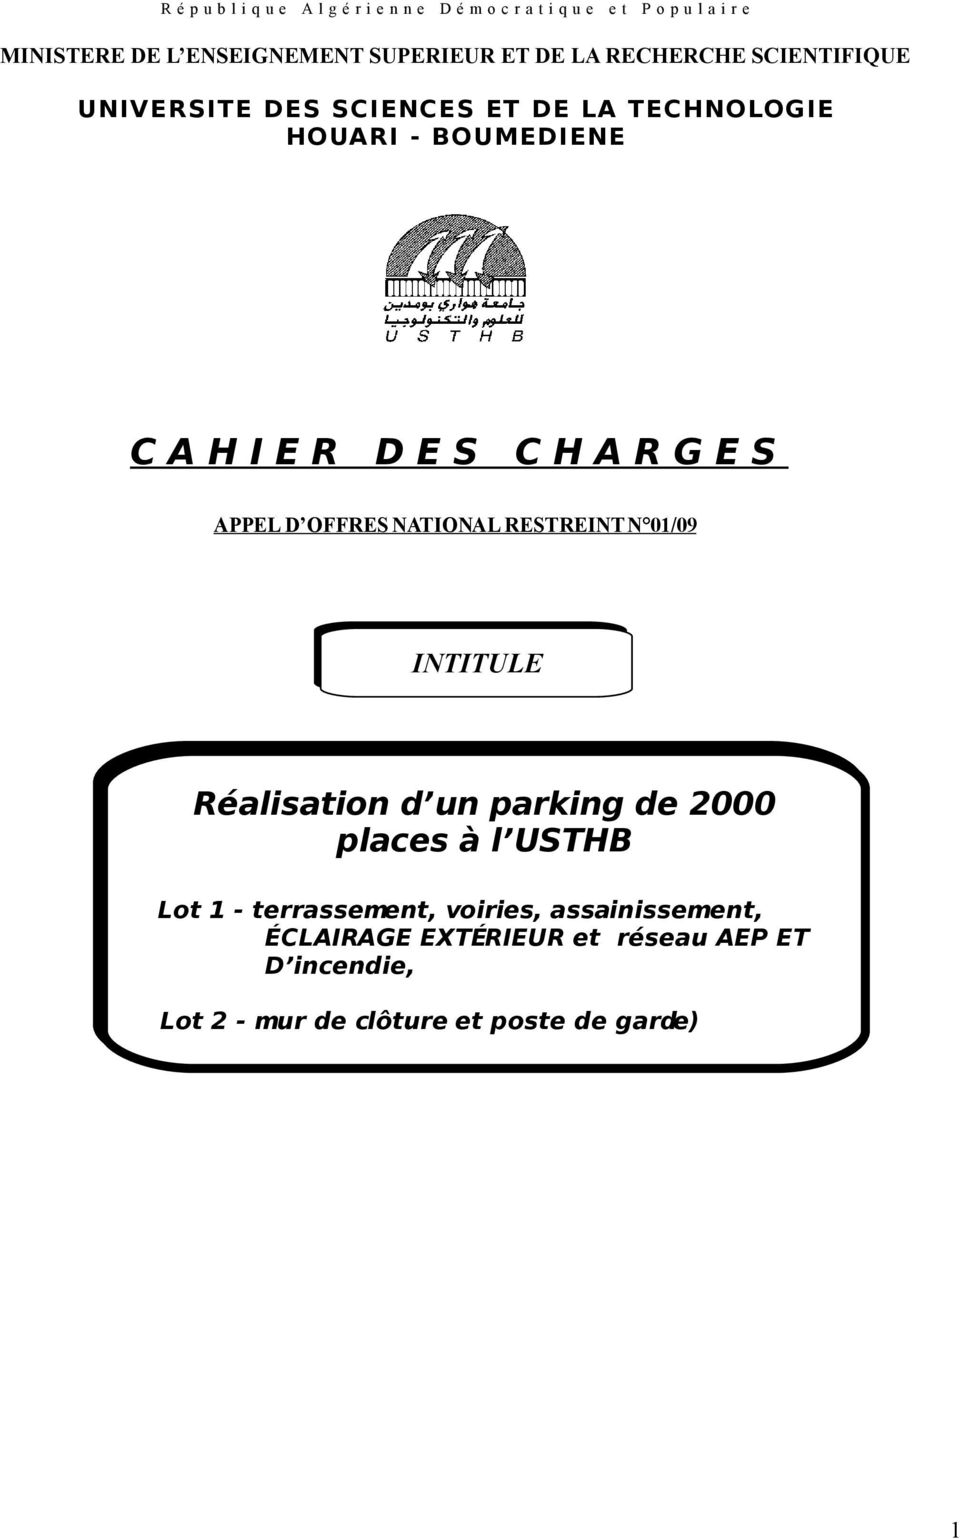 G E S APPEL D OFFRES NATIONAL RESTREINT N 01/09 INTITULE Réalisation d un parking de 2000 places à l USTHB Lot 1 -